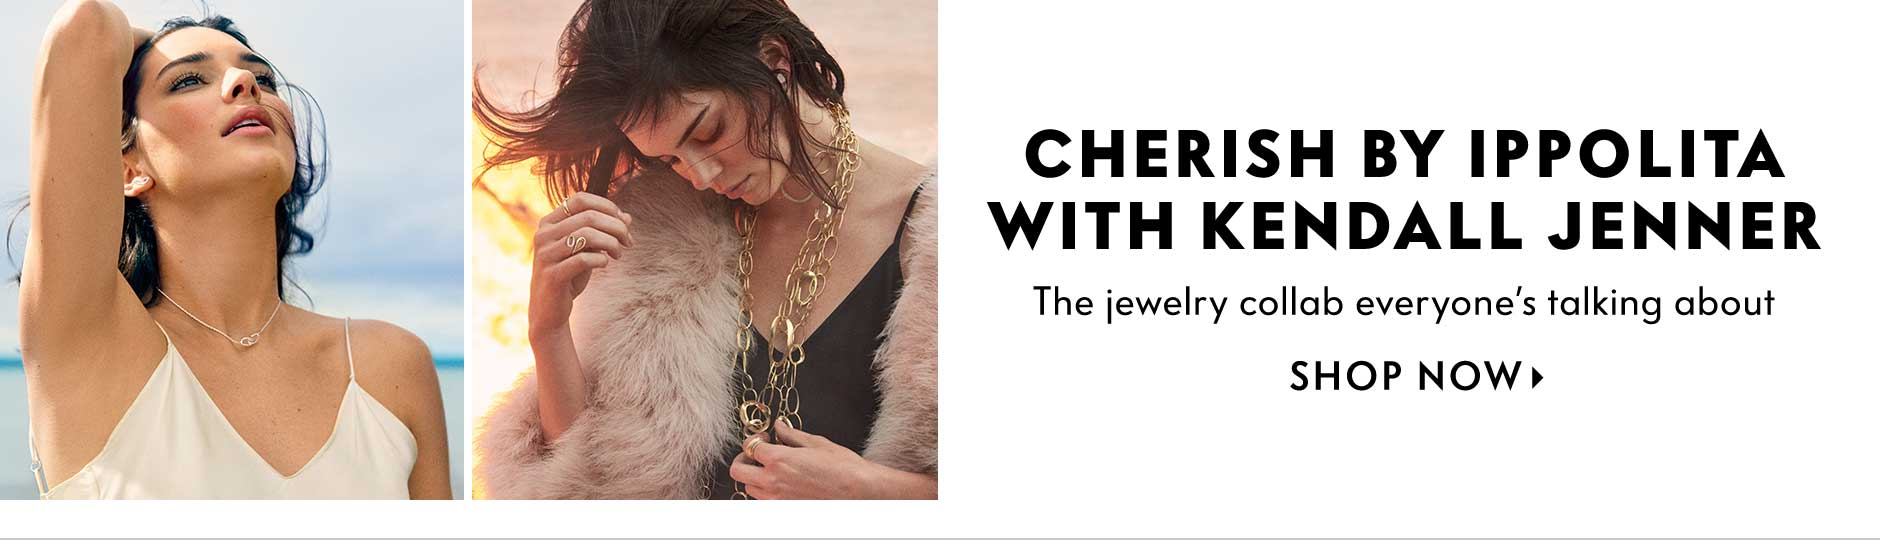 Cherish by Ippolita with Kendall Jenner - The jewelry collab everyone's talking about